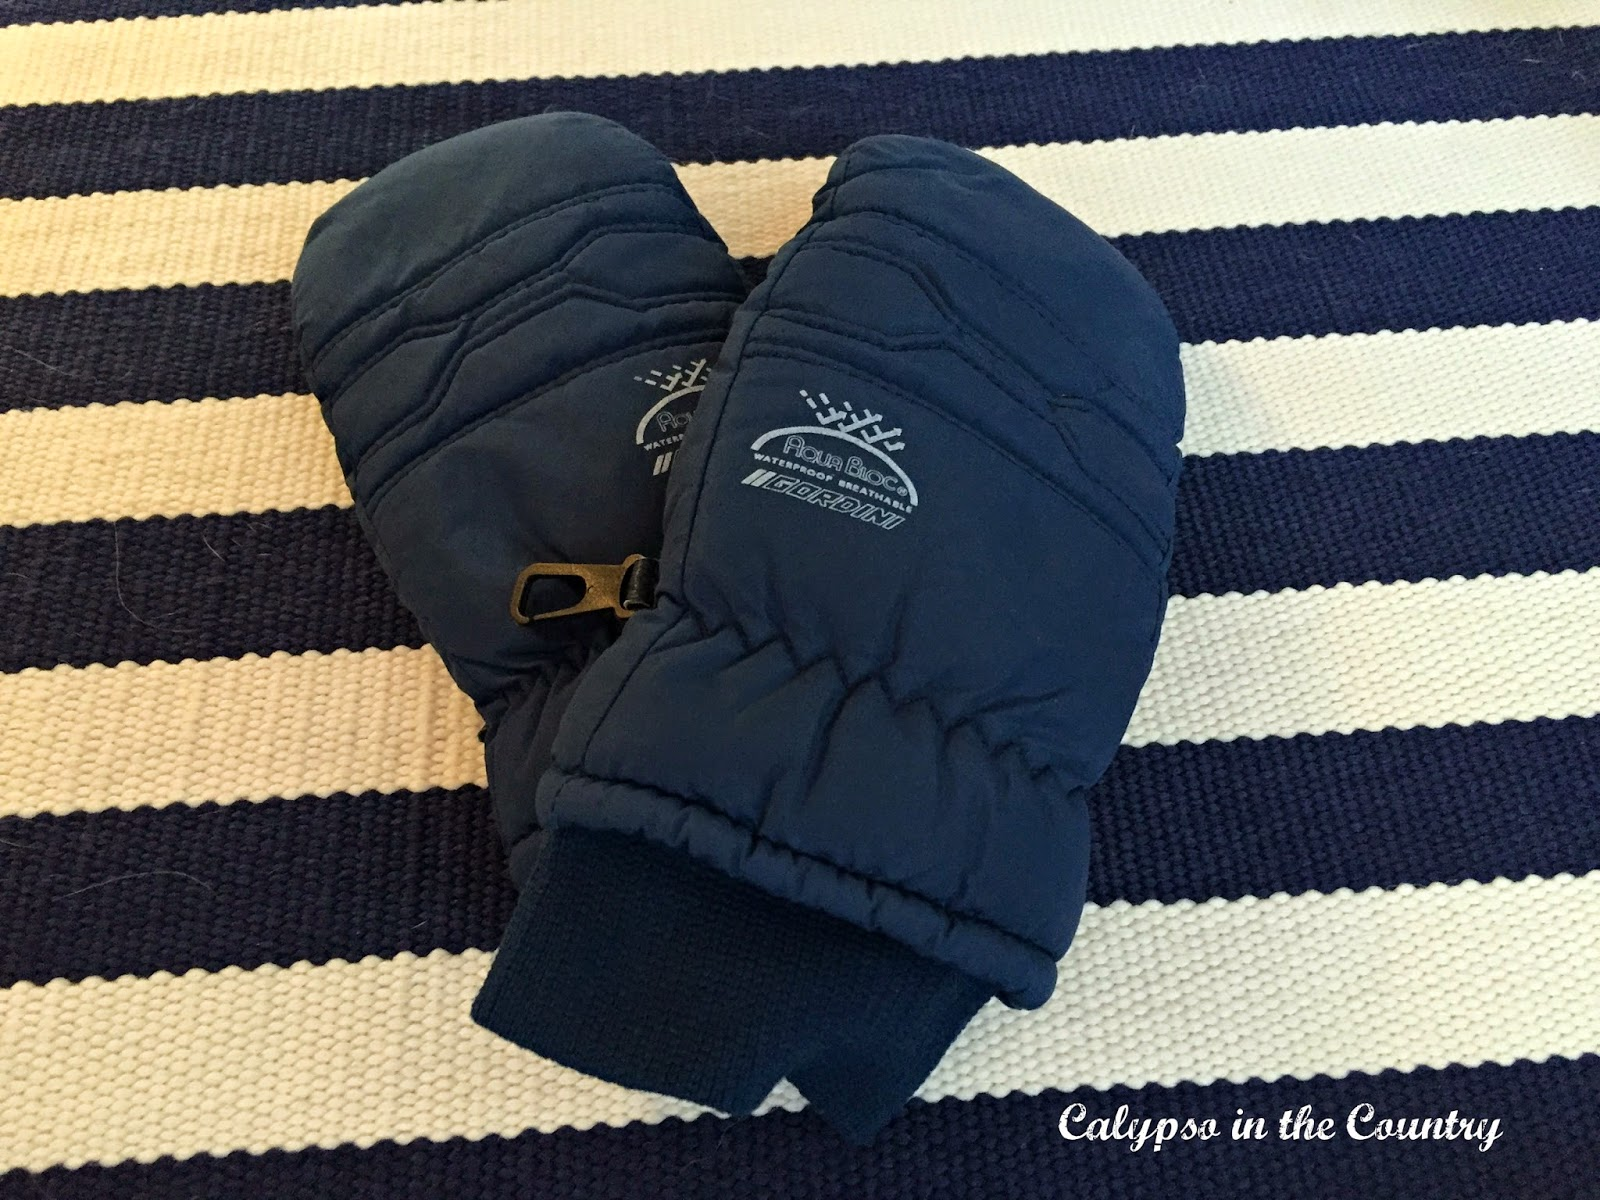 Ski Mittens - one of my essentials to stay warm